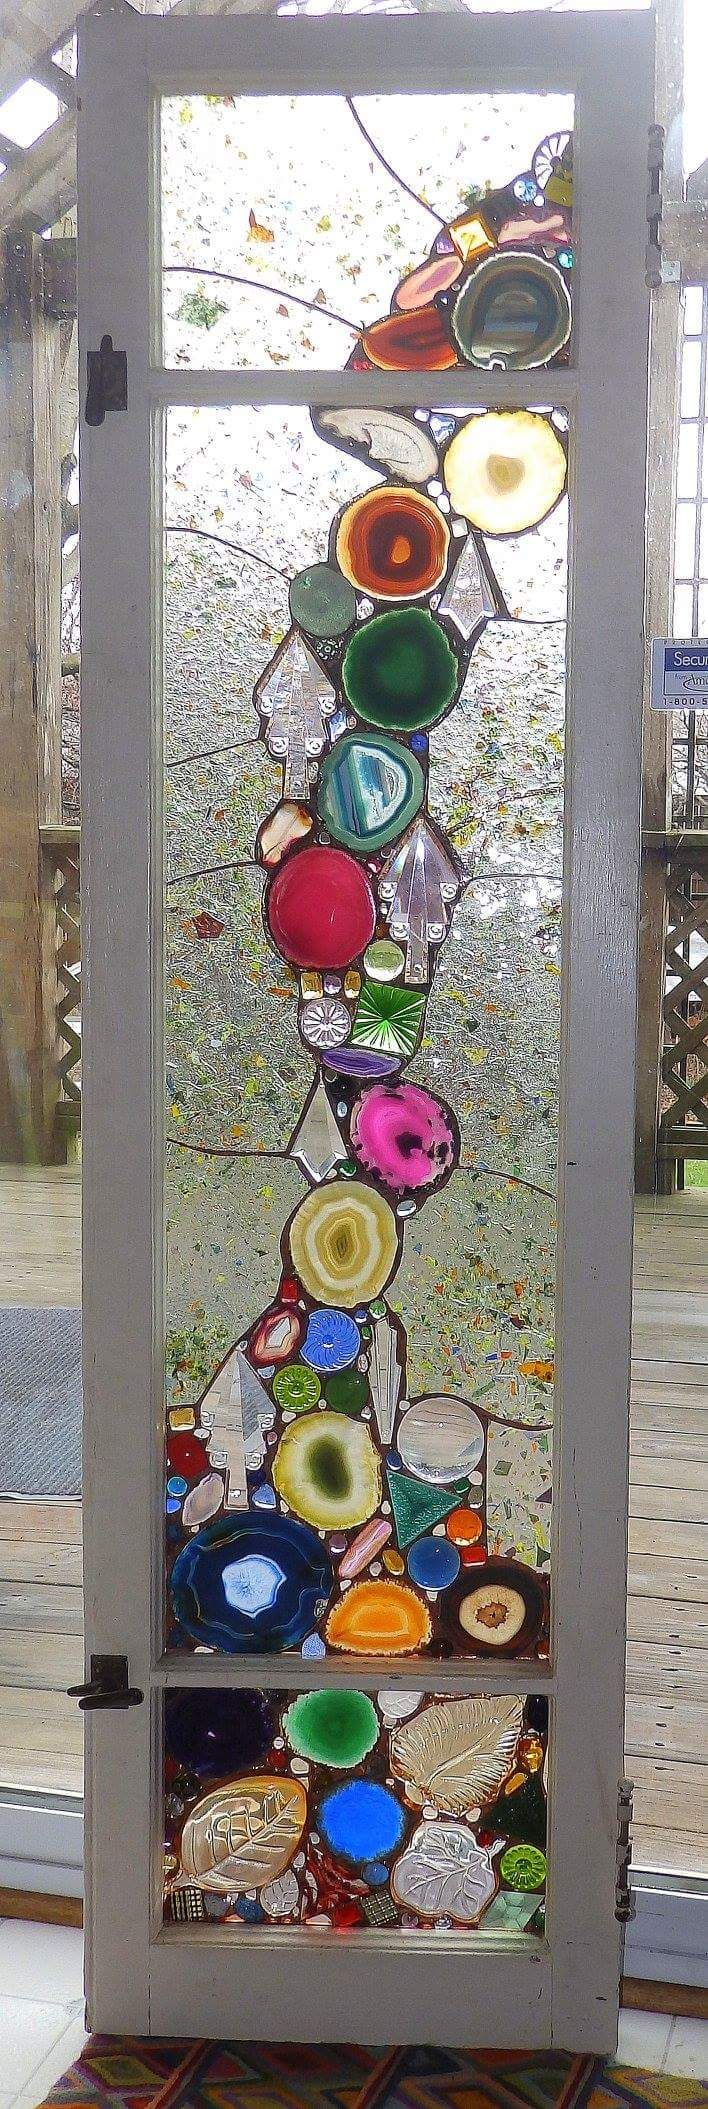 "Alison's Stained Glass - ""This is an advanced form of stained glass, where I use antique/vintage glass inclusions in each piece. All individually foiled and soldered with classic stained glass as the background. I also recycle old window sashes to use as my frames"""